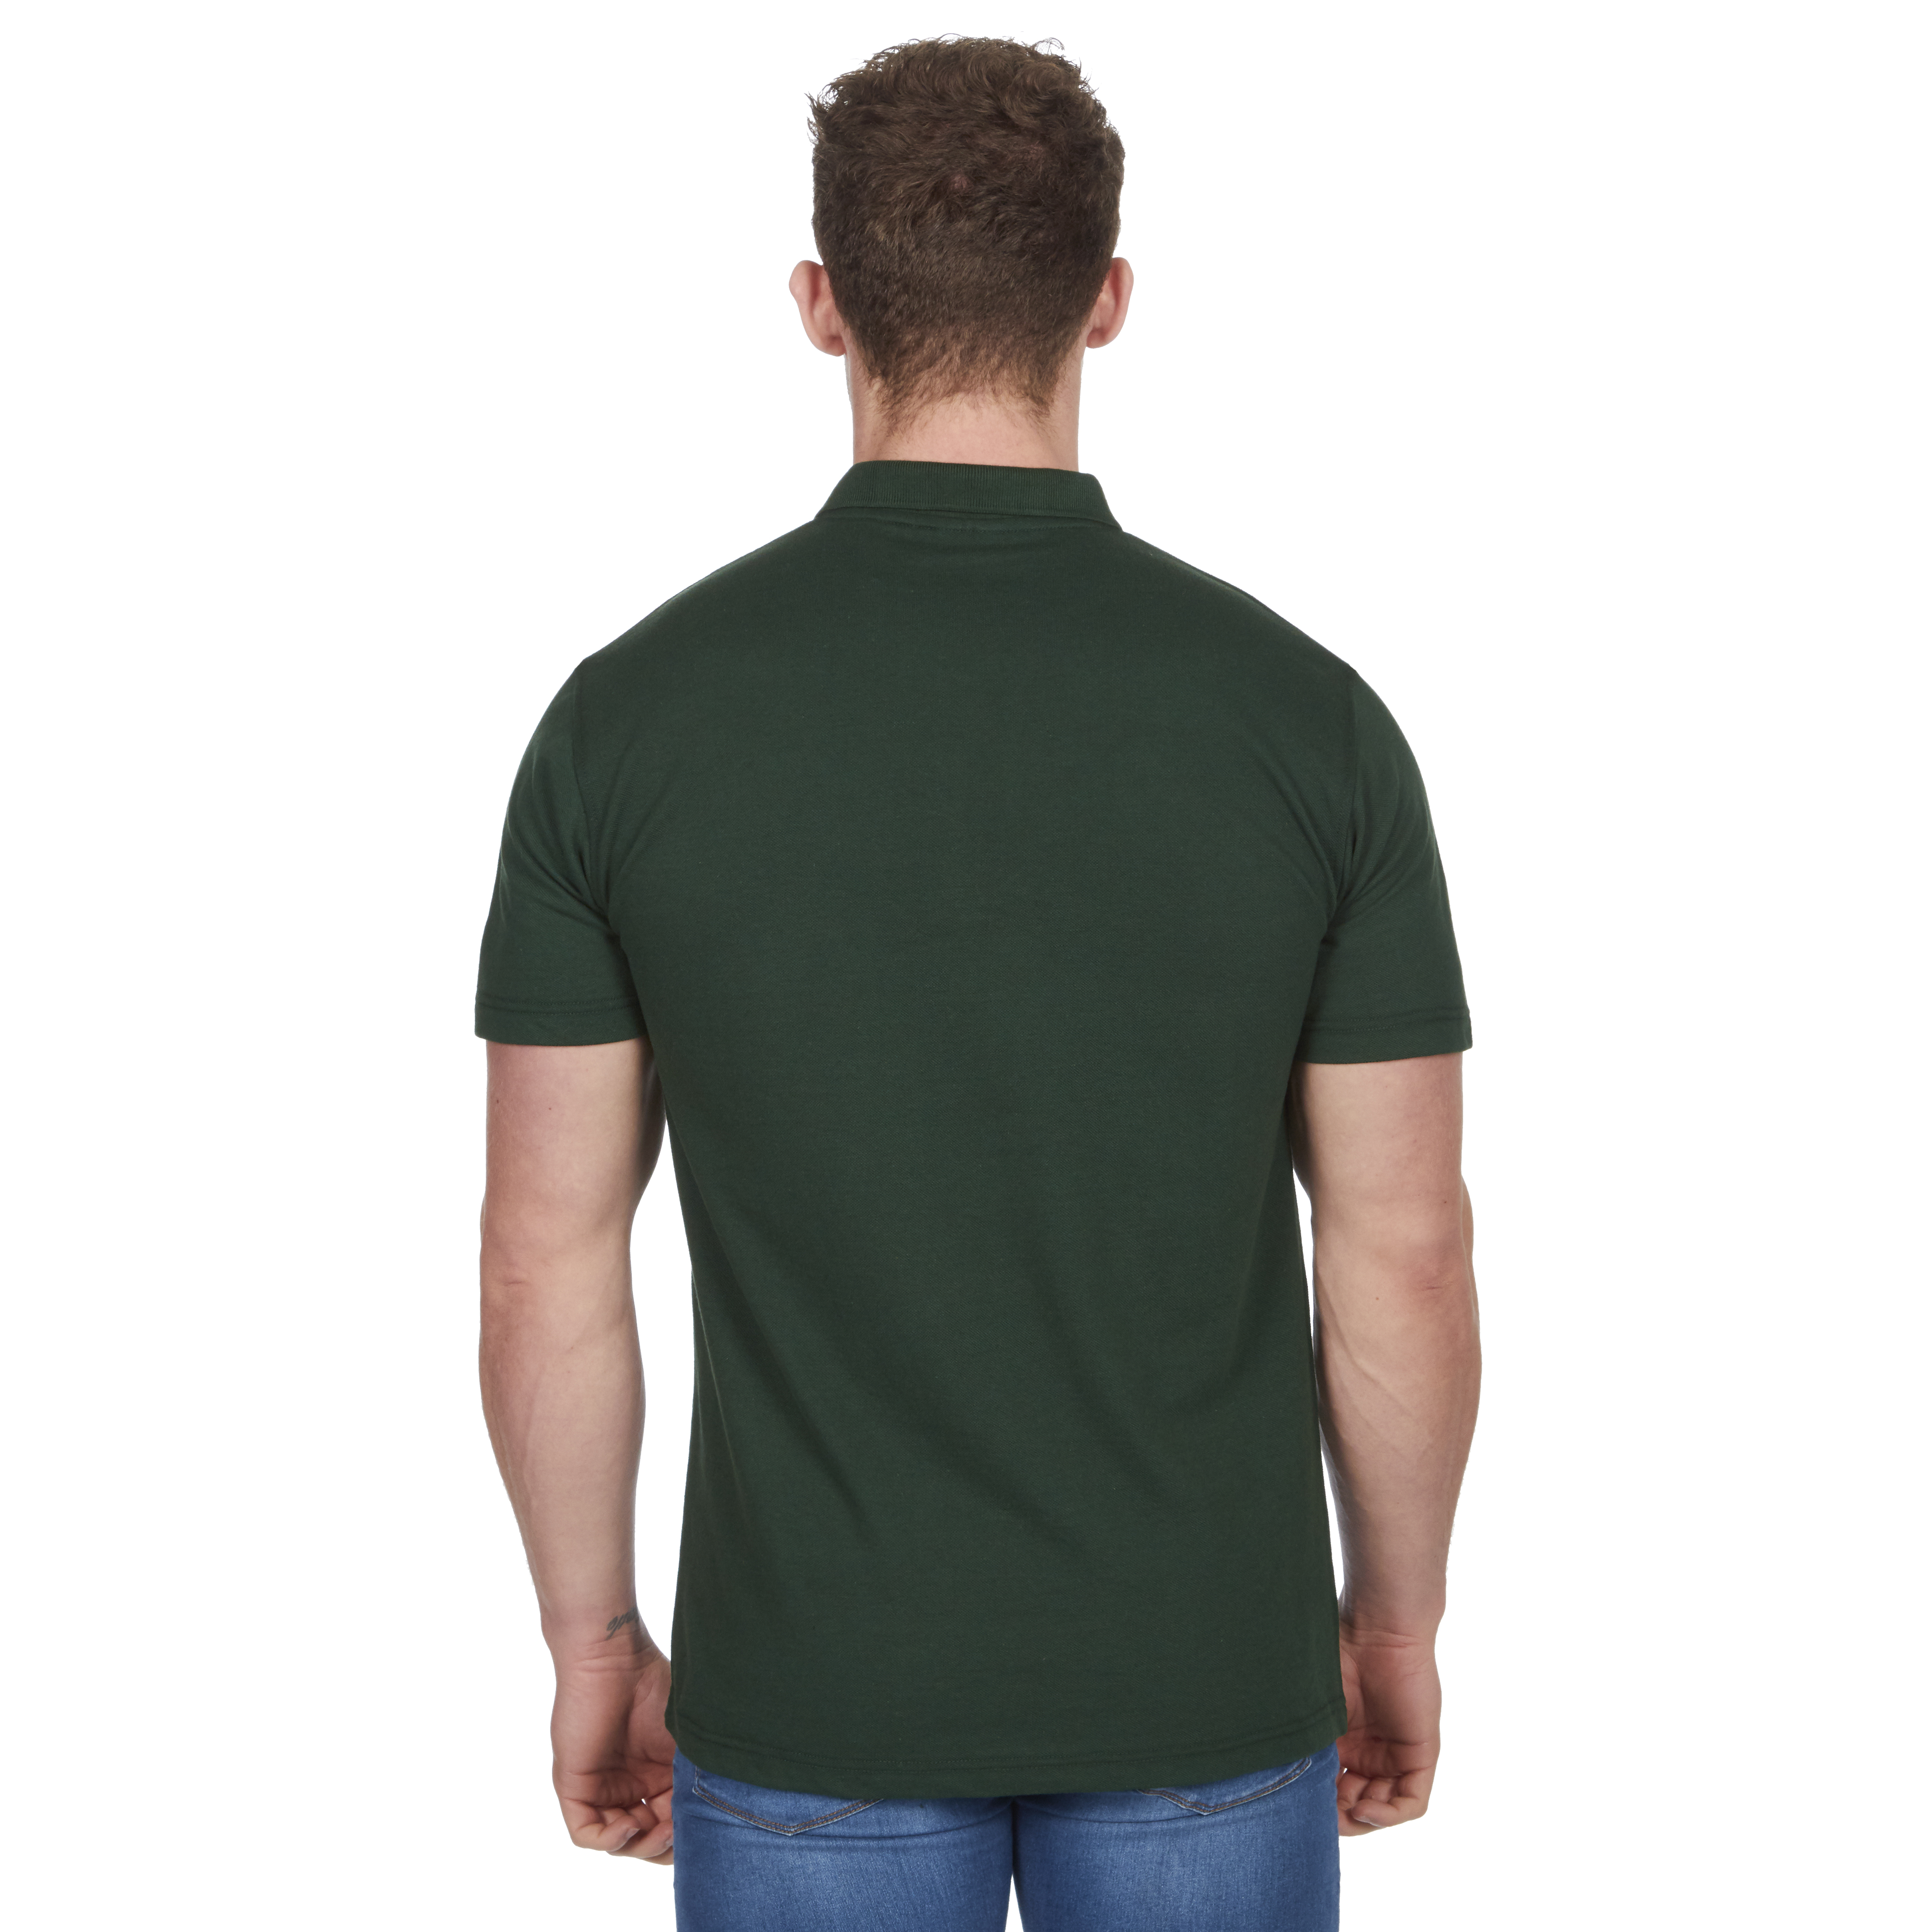 Mens-Classic-Polo-Top-Plus-Size-T-Shirt-Plain-Shirt-Big-And-Tall-Short-Sleeve thumbnail 25